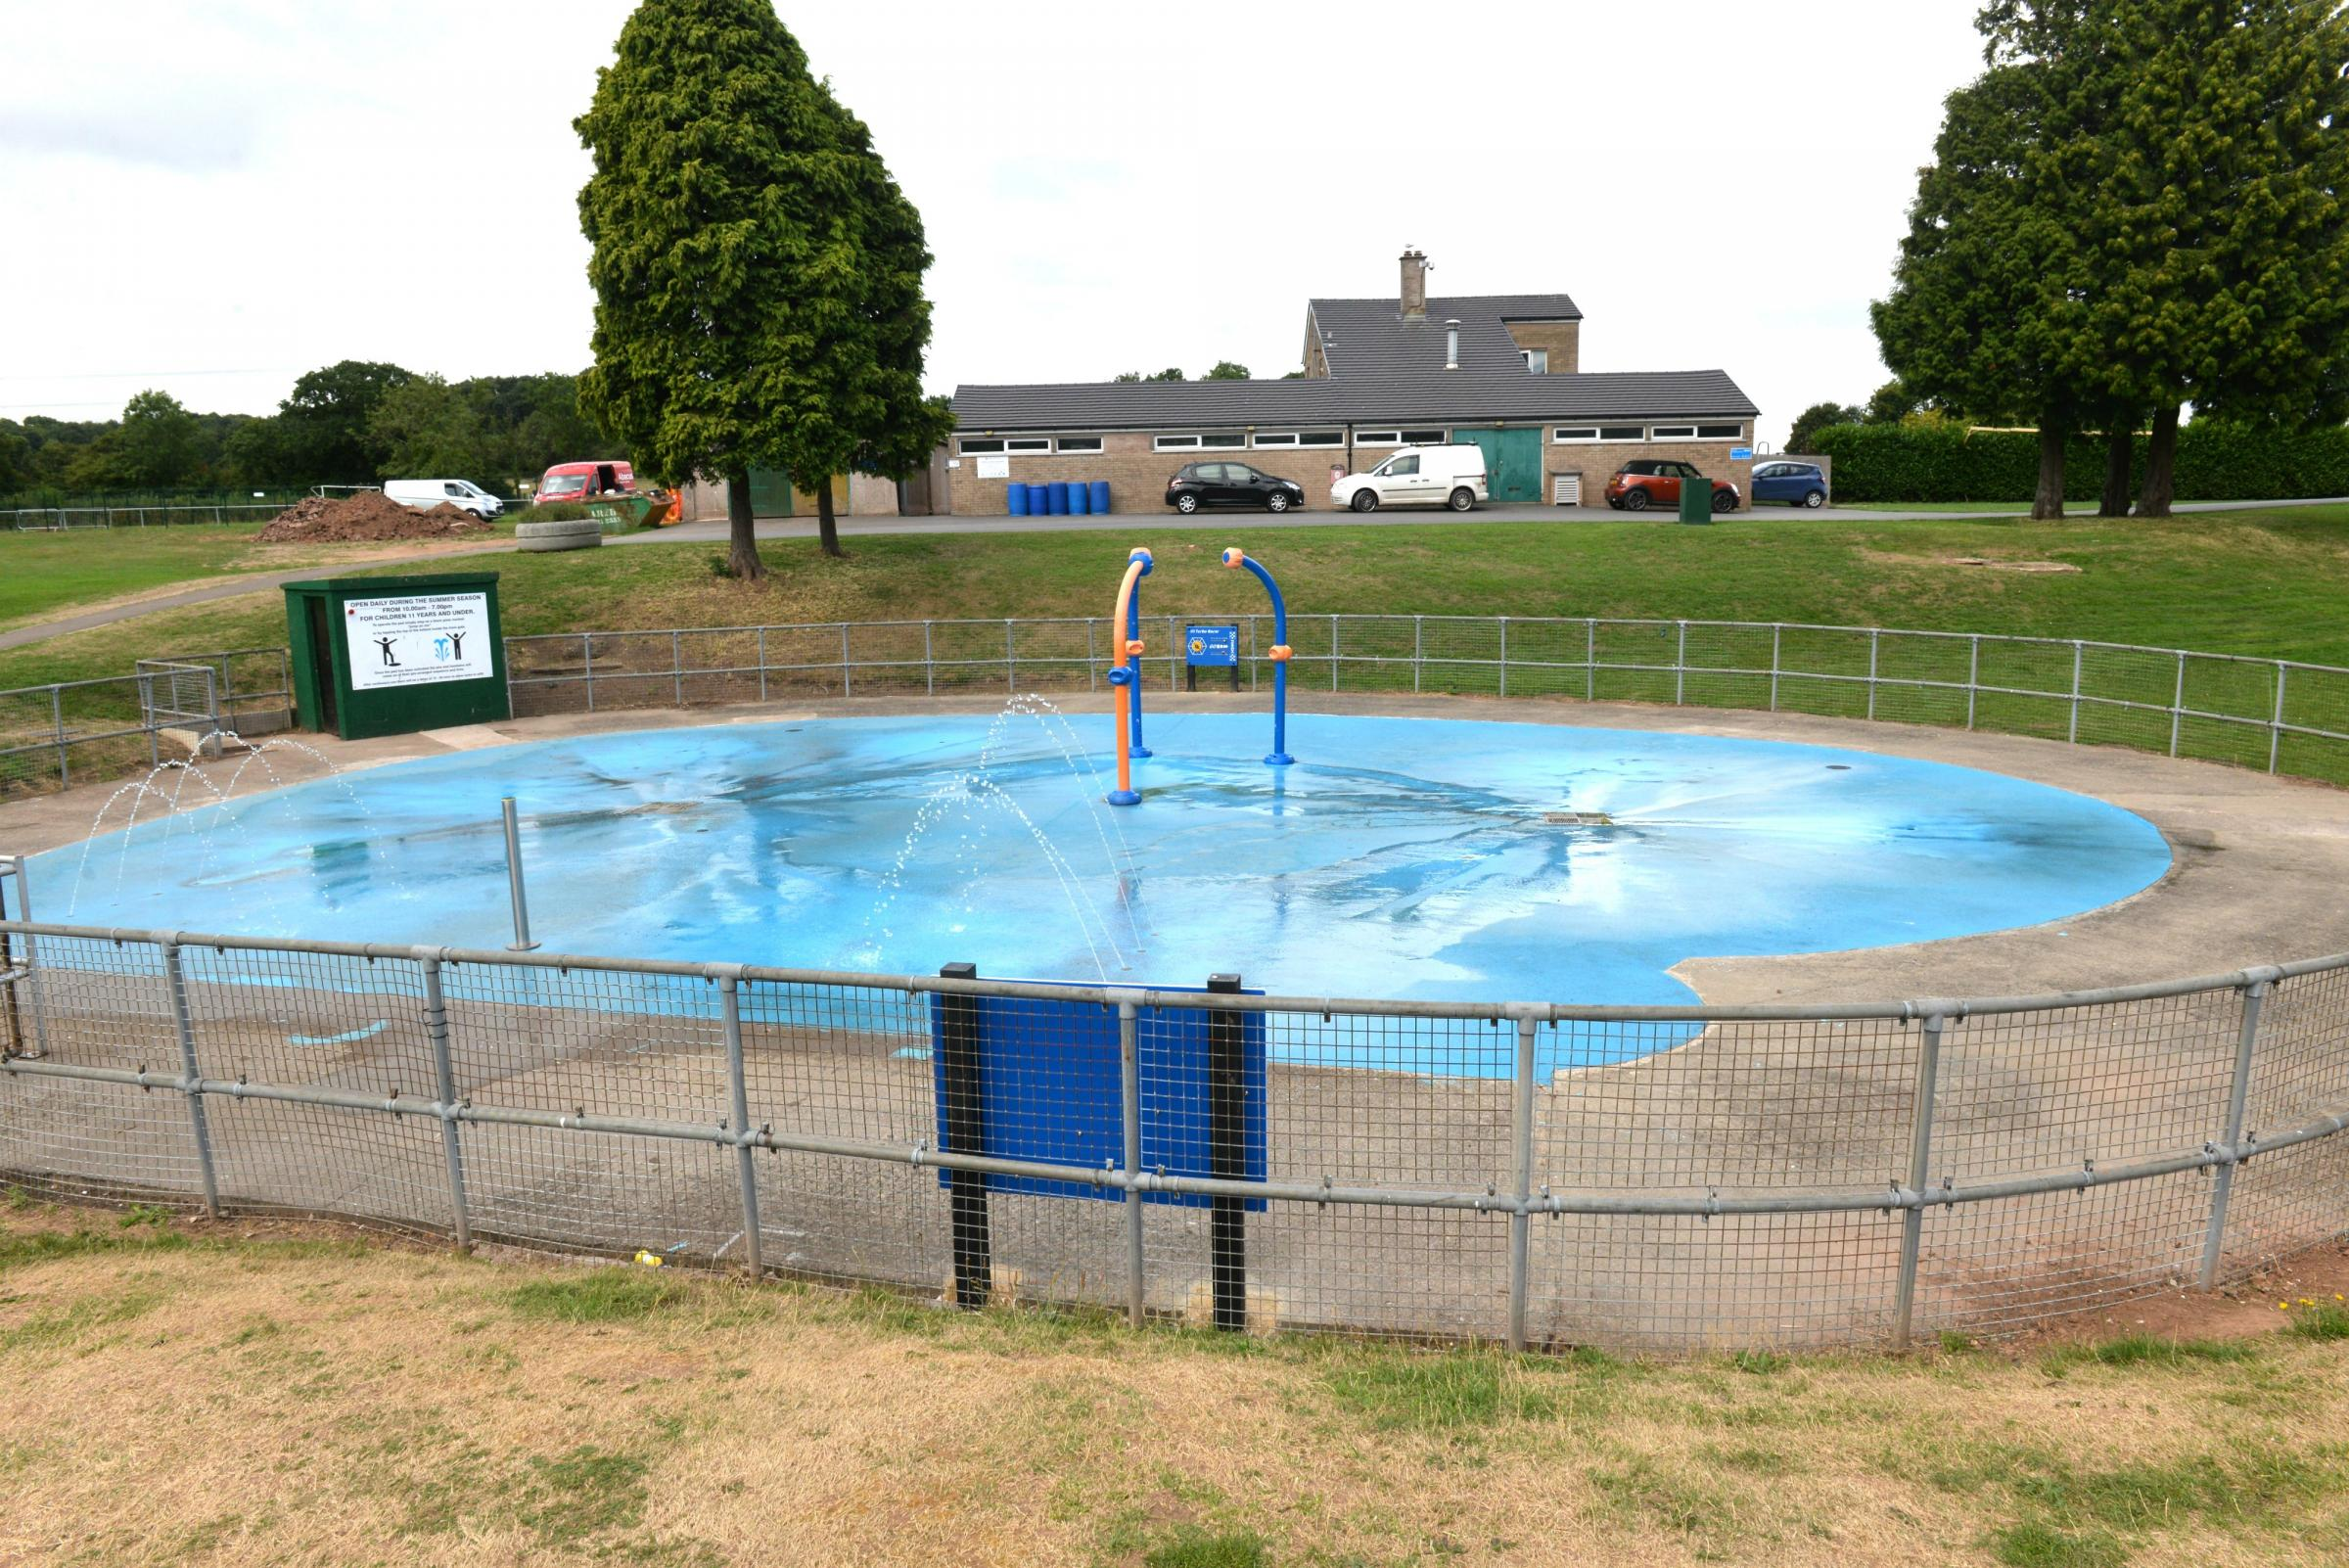 The Splash Pad on the Mundy Playing Fields in Thornbury has been the subject of much debate. Photo: Steve Richards